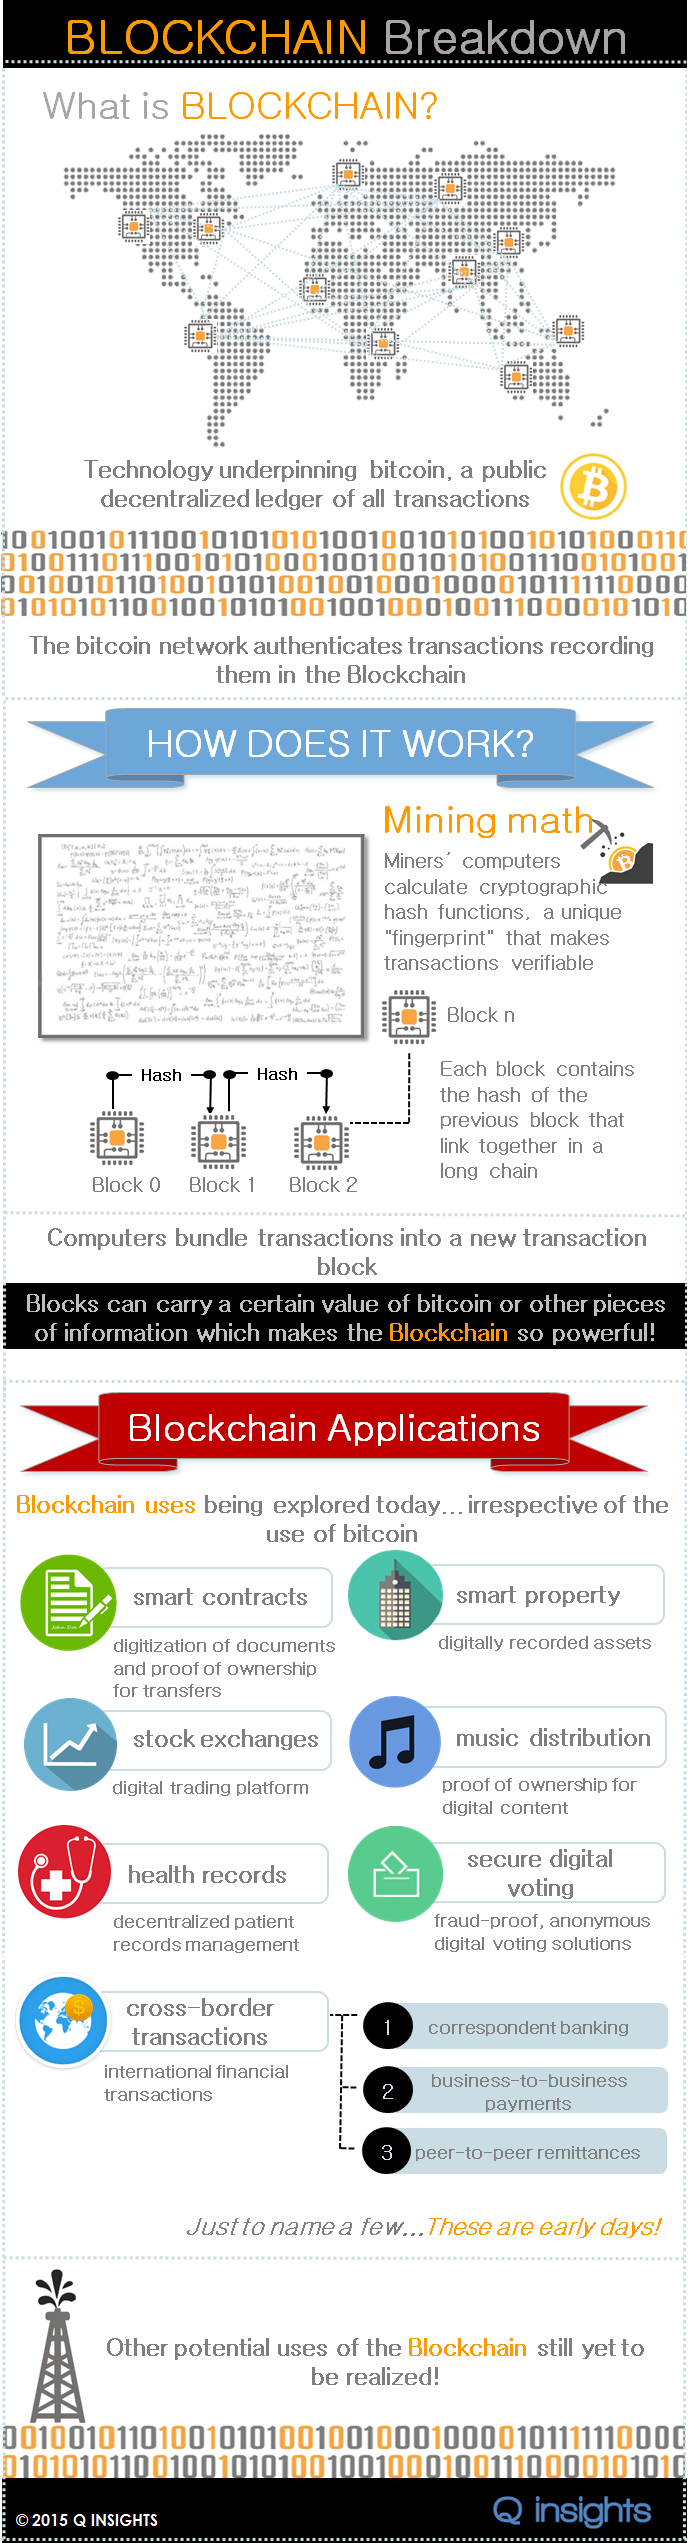 2015 Q INSIGHTS Blockchain Infographic